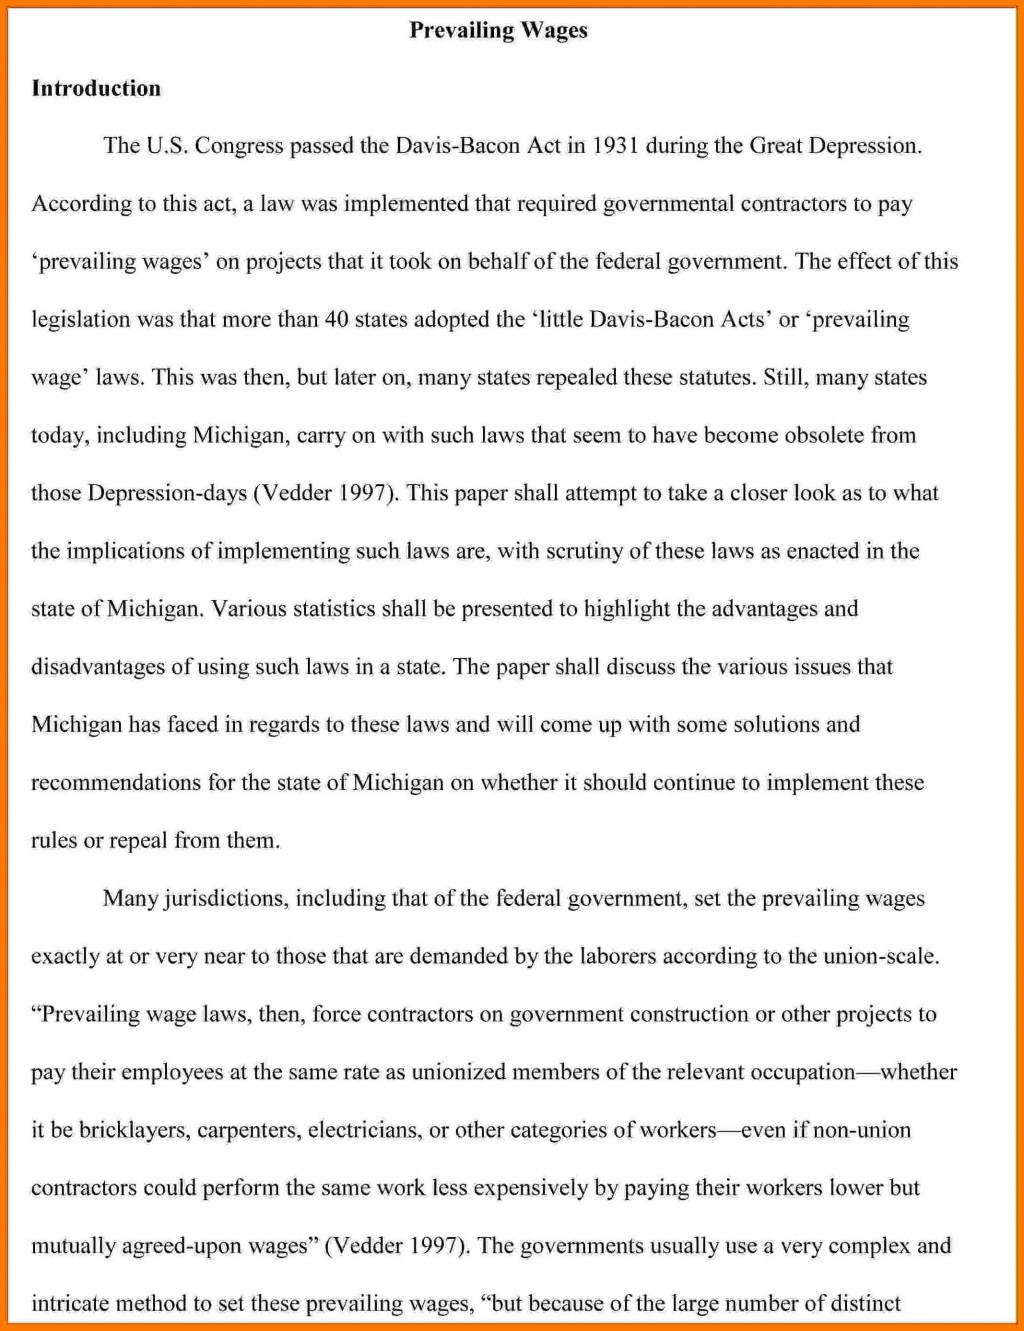 003 Introduction Of Research Paper Example Collection Solutions Apa Top Mla Abstract And A Paragraph Large